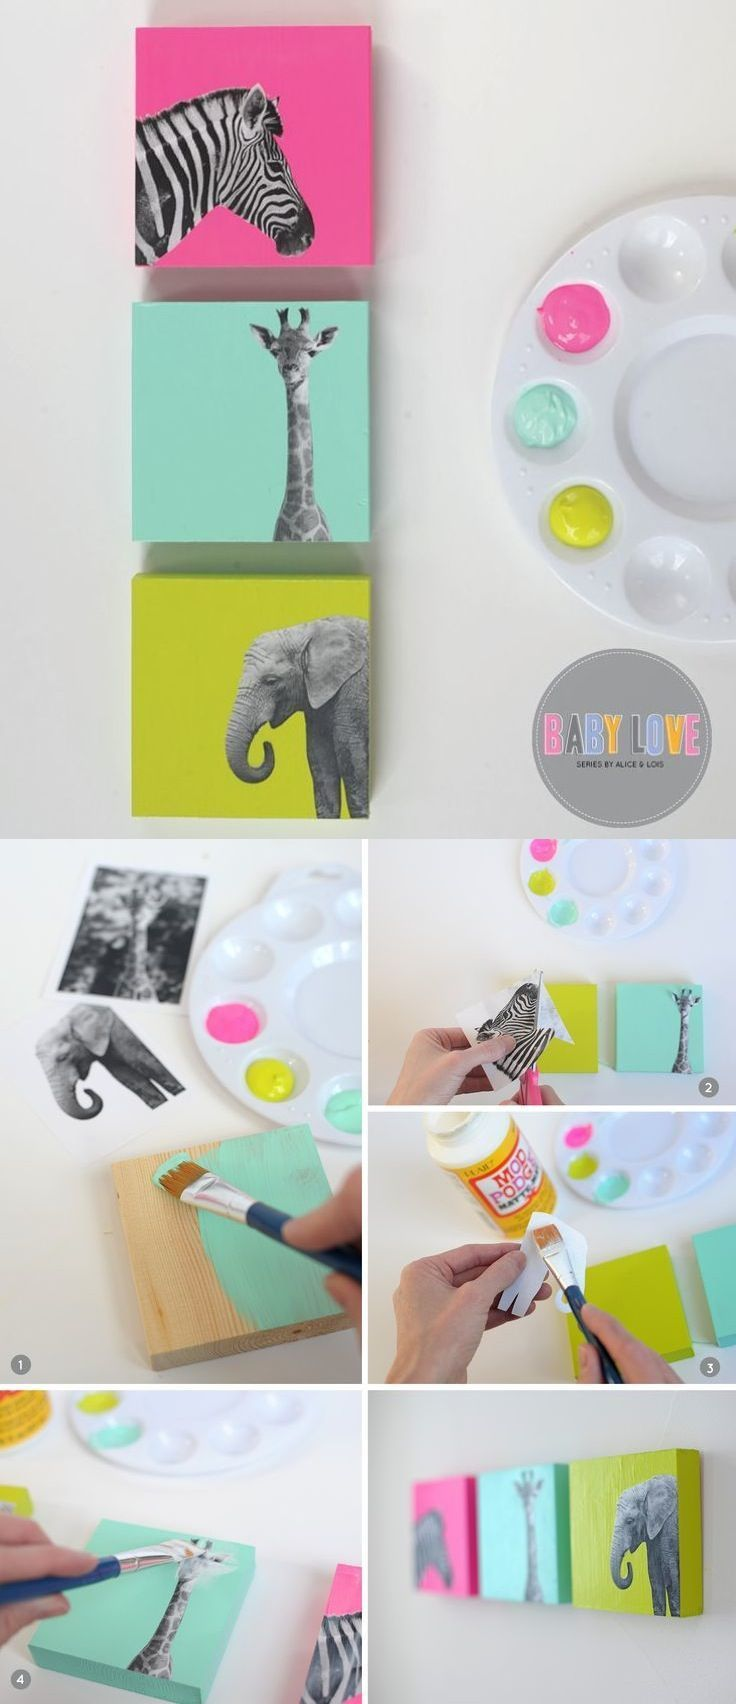 6 CUTE DIY PROJECTS FOR KIDS Kids Bedroom Inspiration kids bedroom organization. Easy art projects.